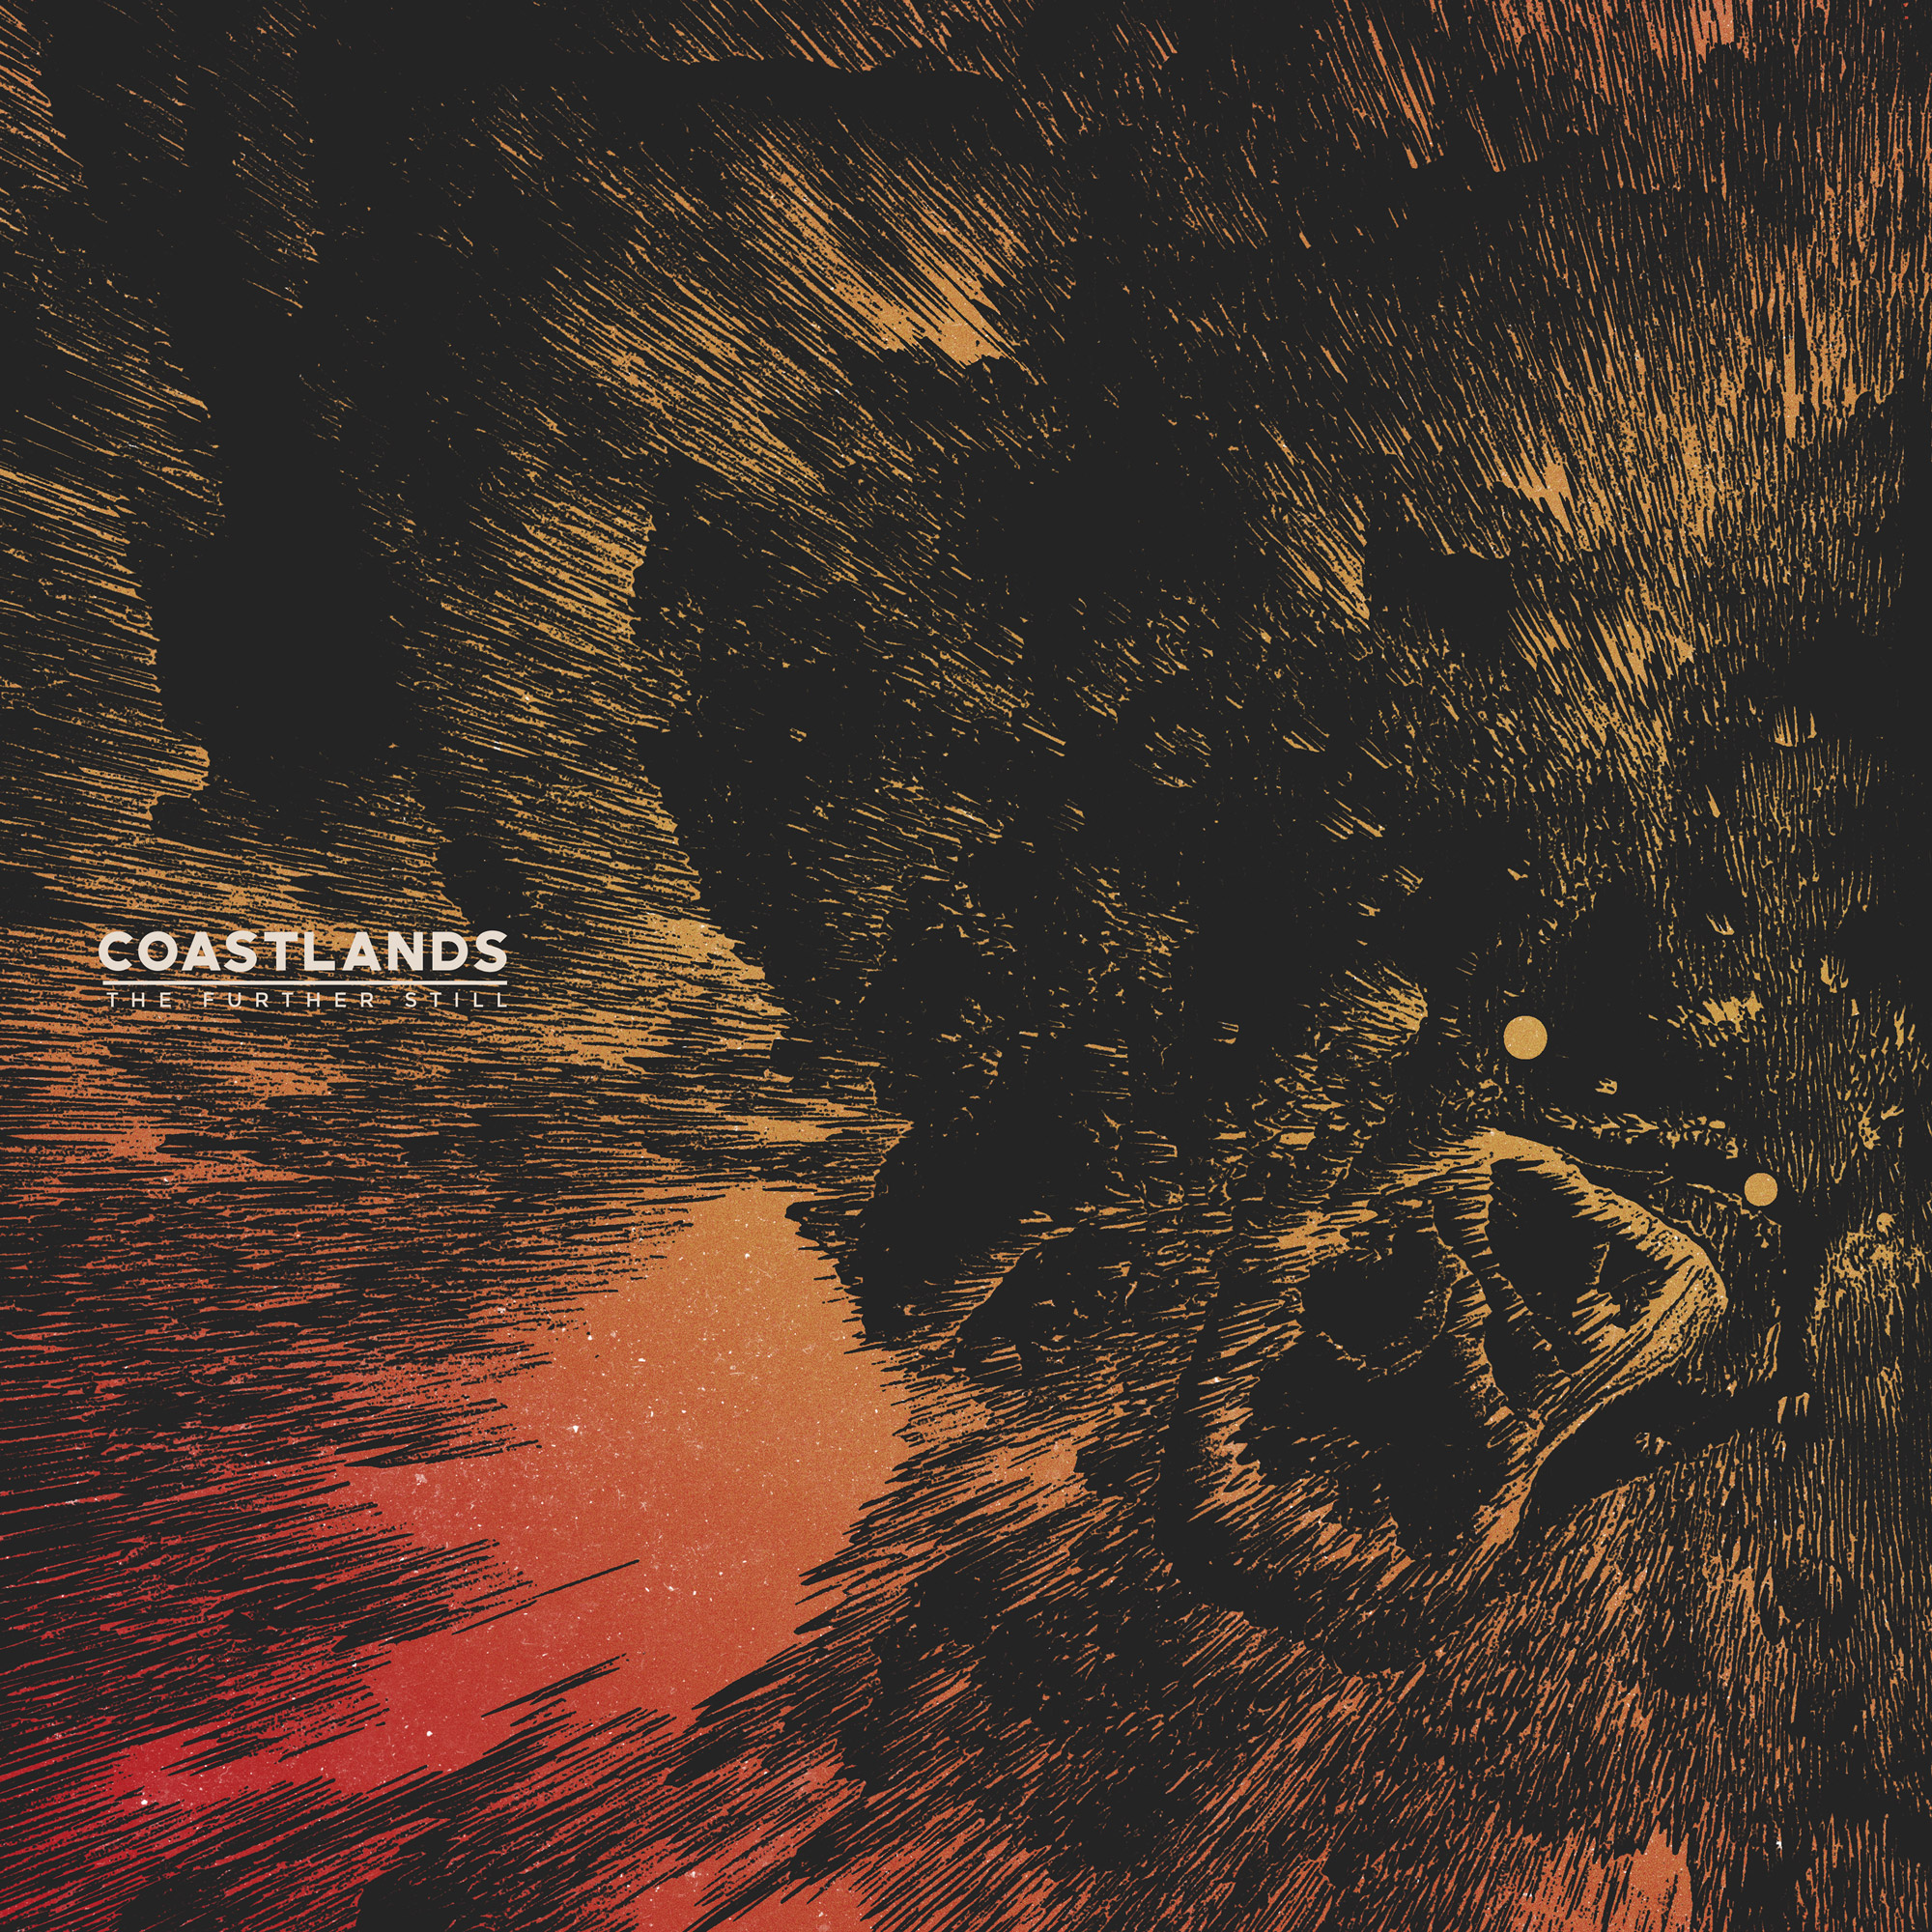 Coastlands - 'The Further Still' [2xLP]